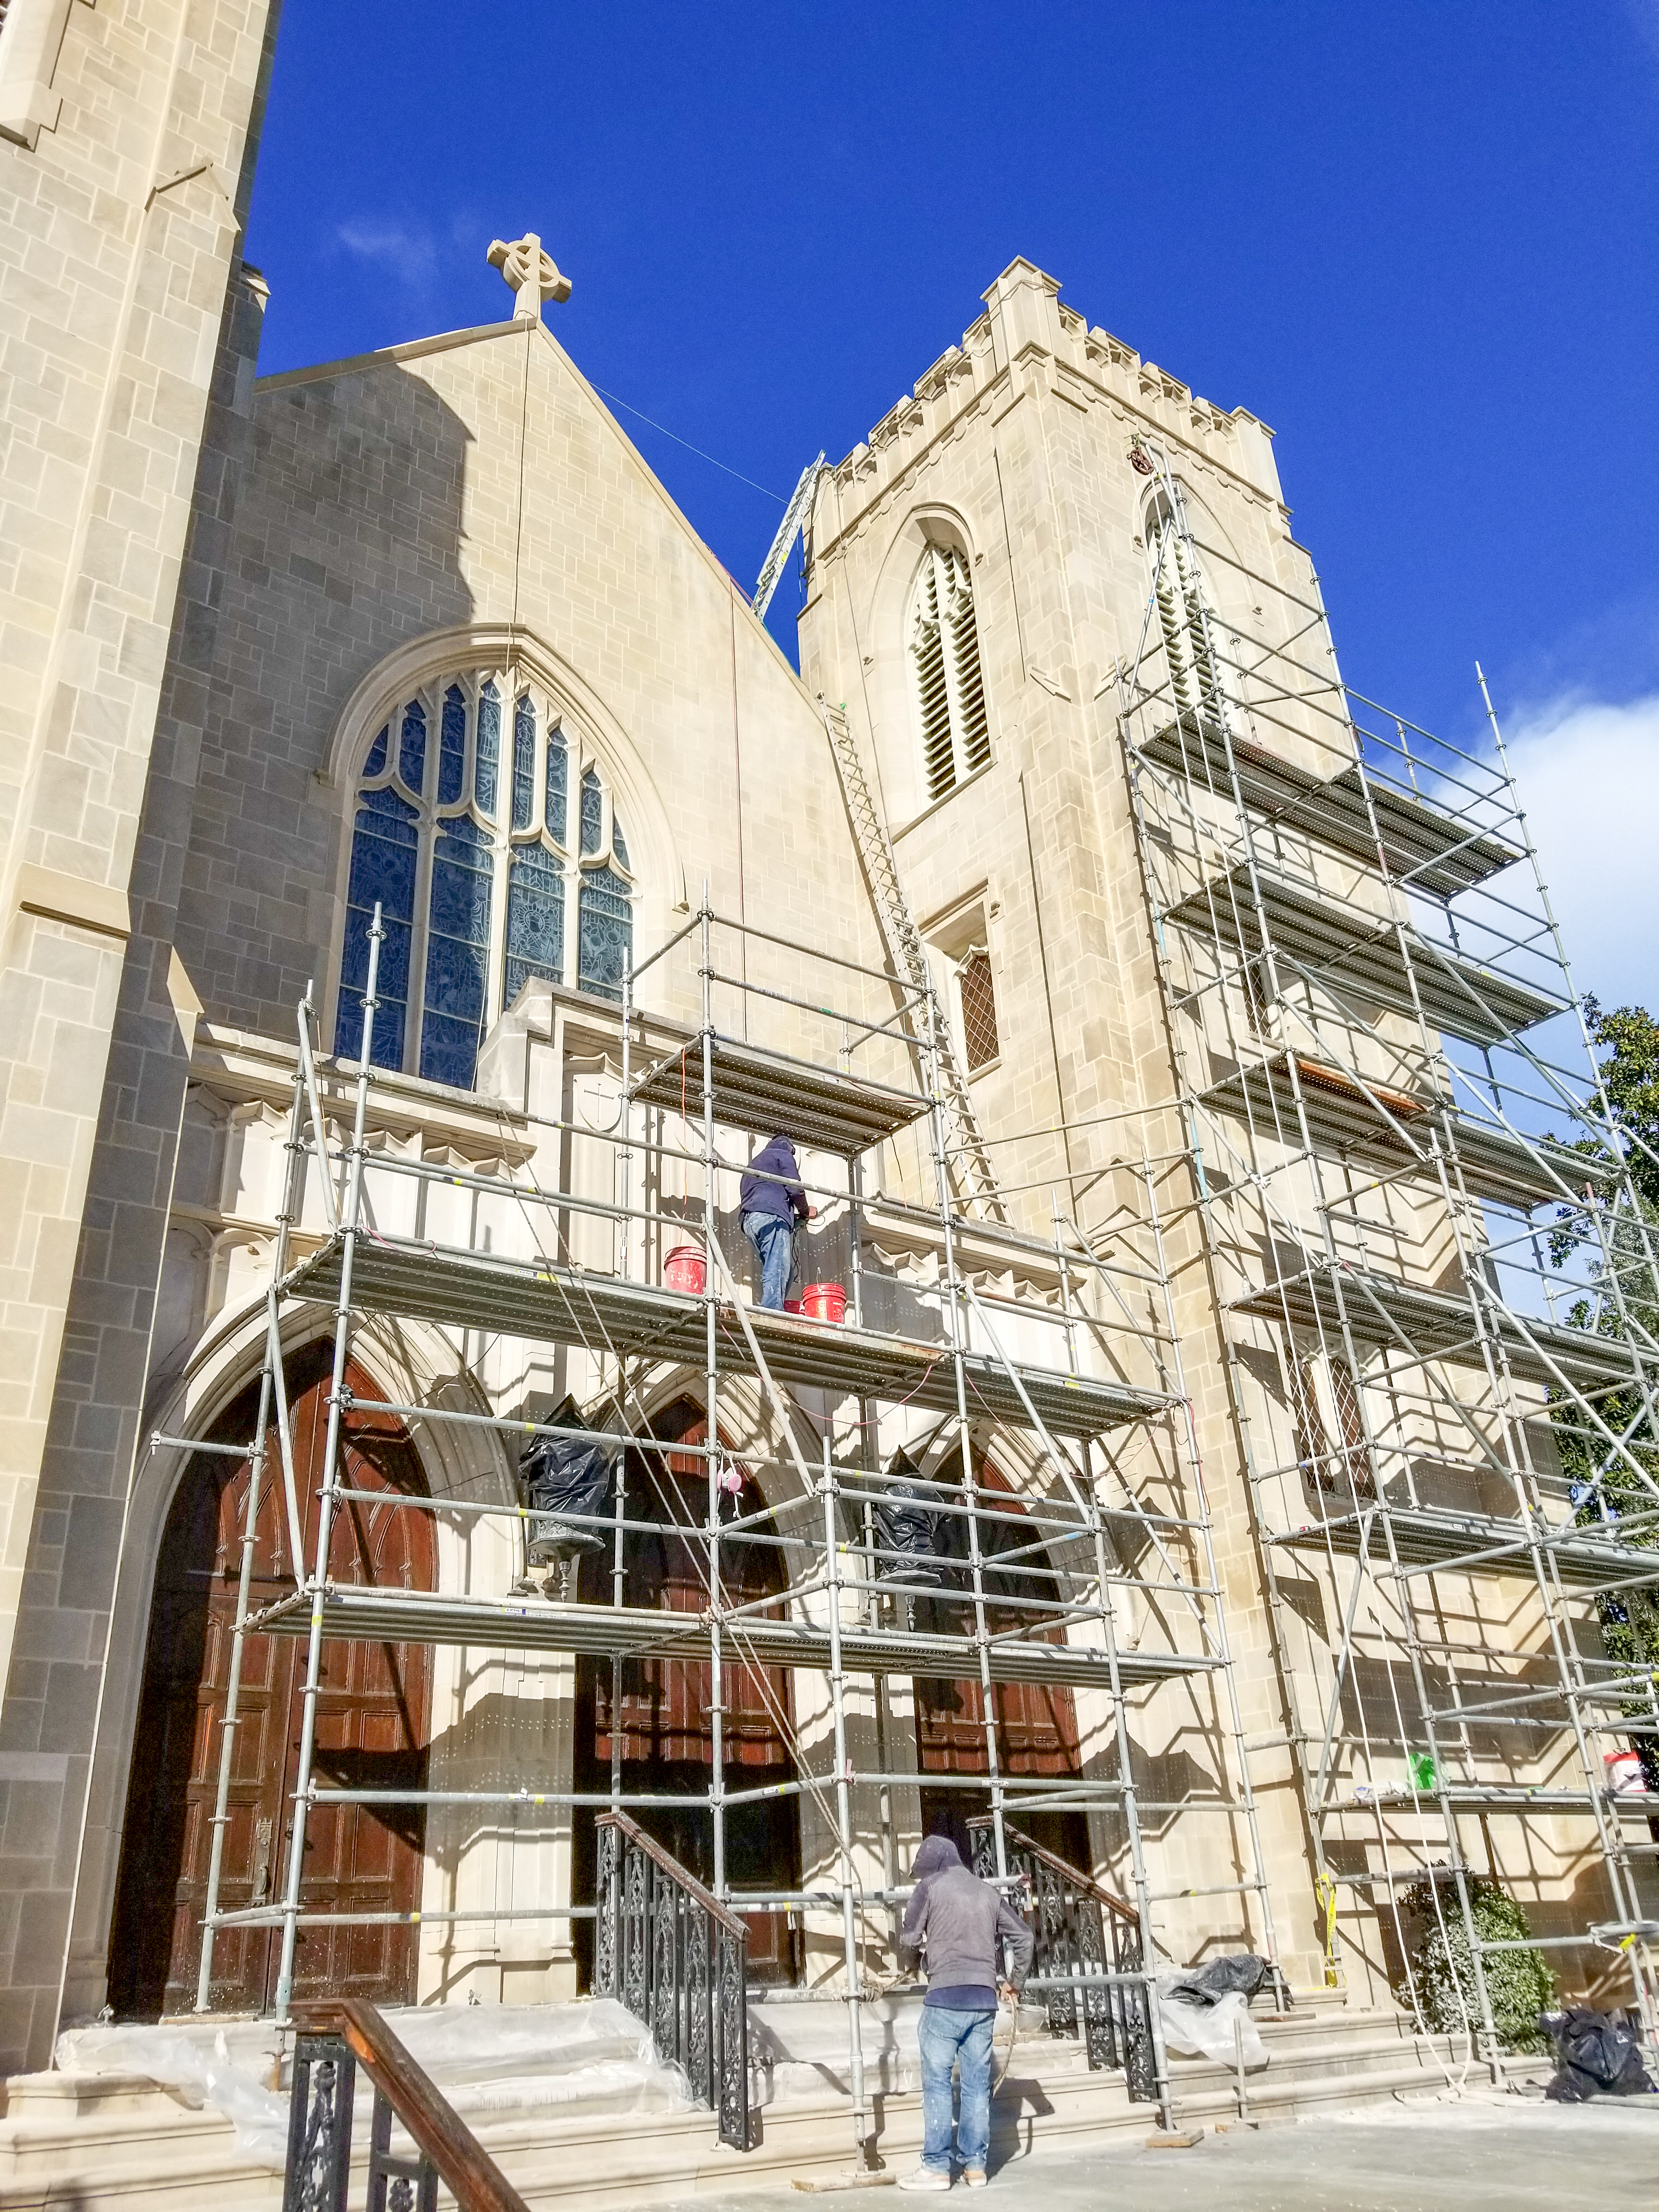 Presto technicians on scaffoldings to perform exterior historic preservation and waterproofing services on Gothic-style church in Macon, Georgia